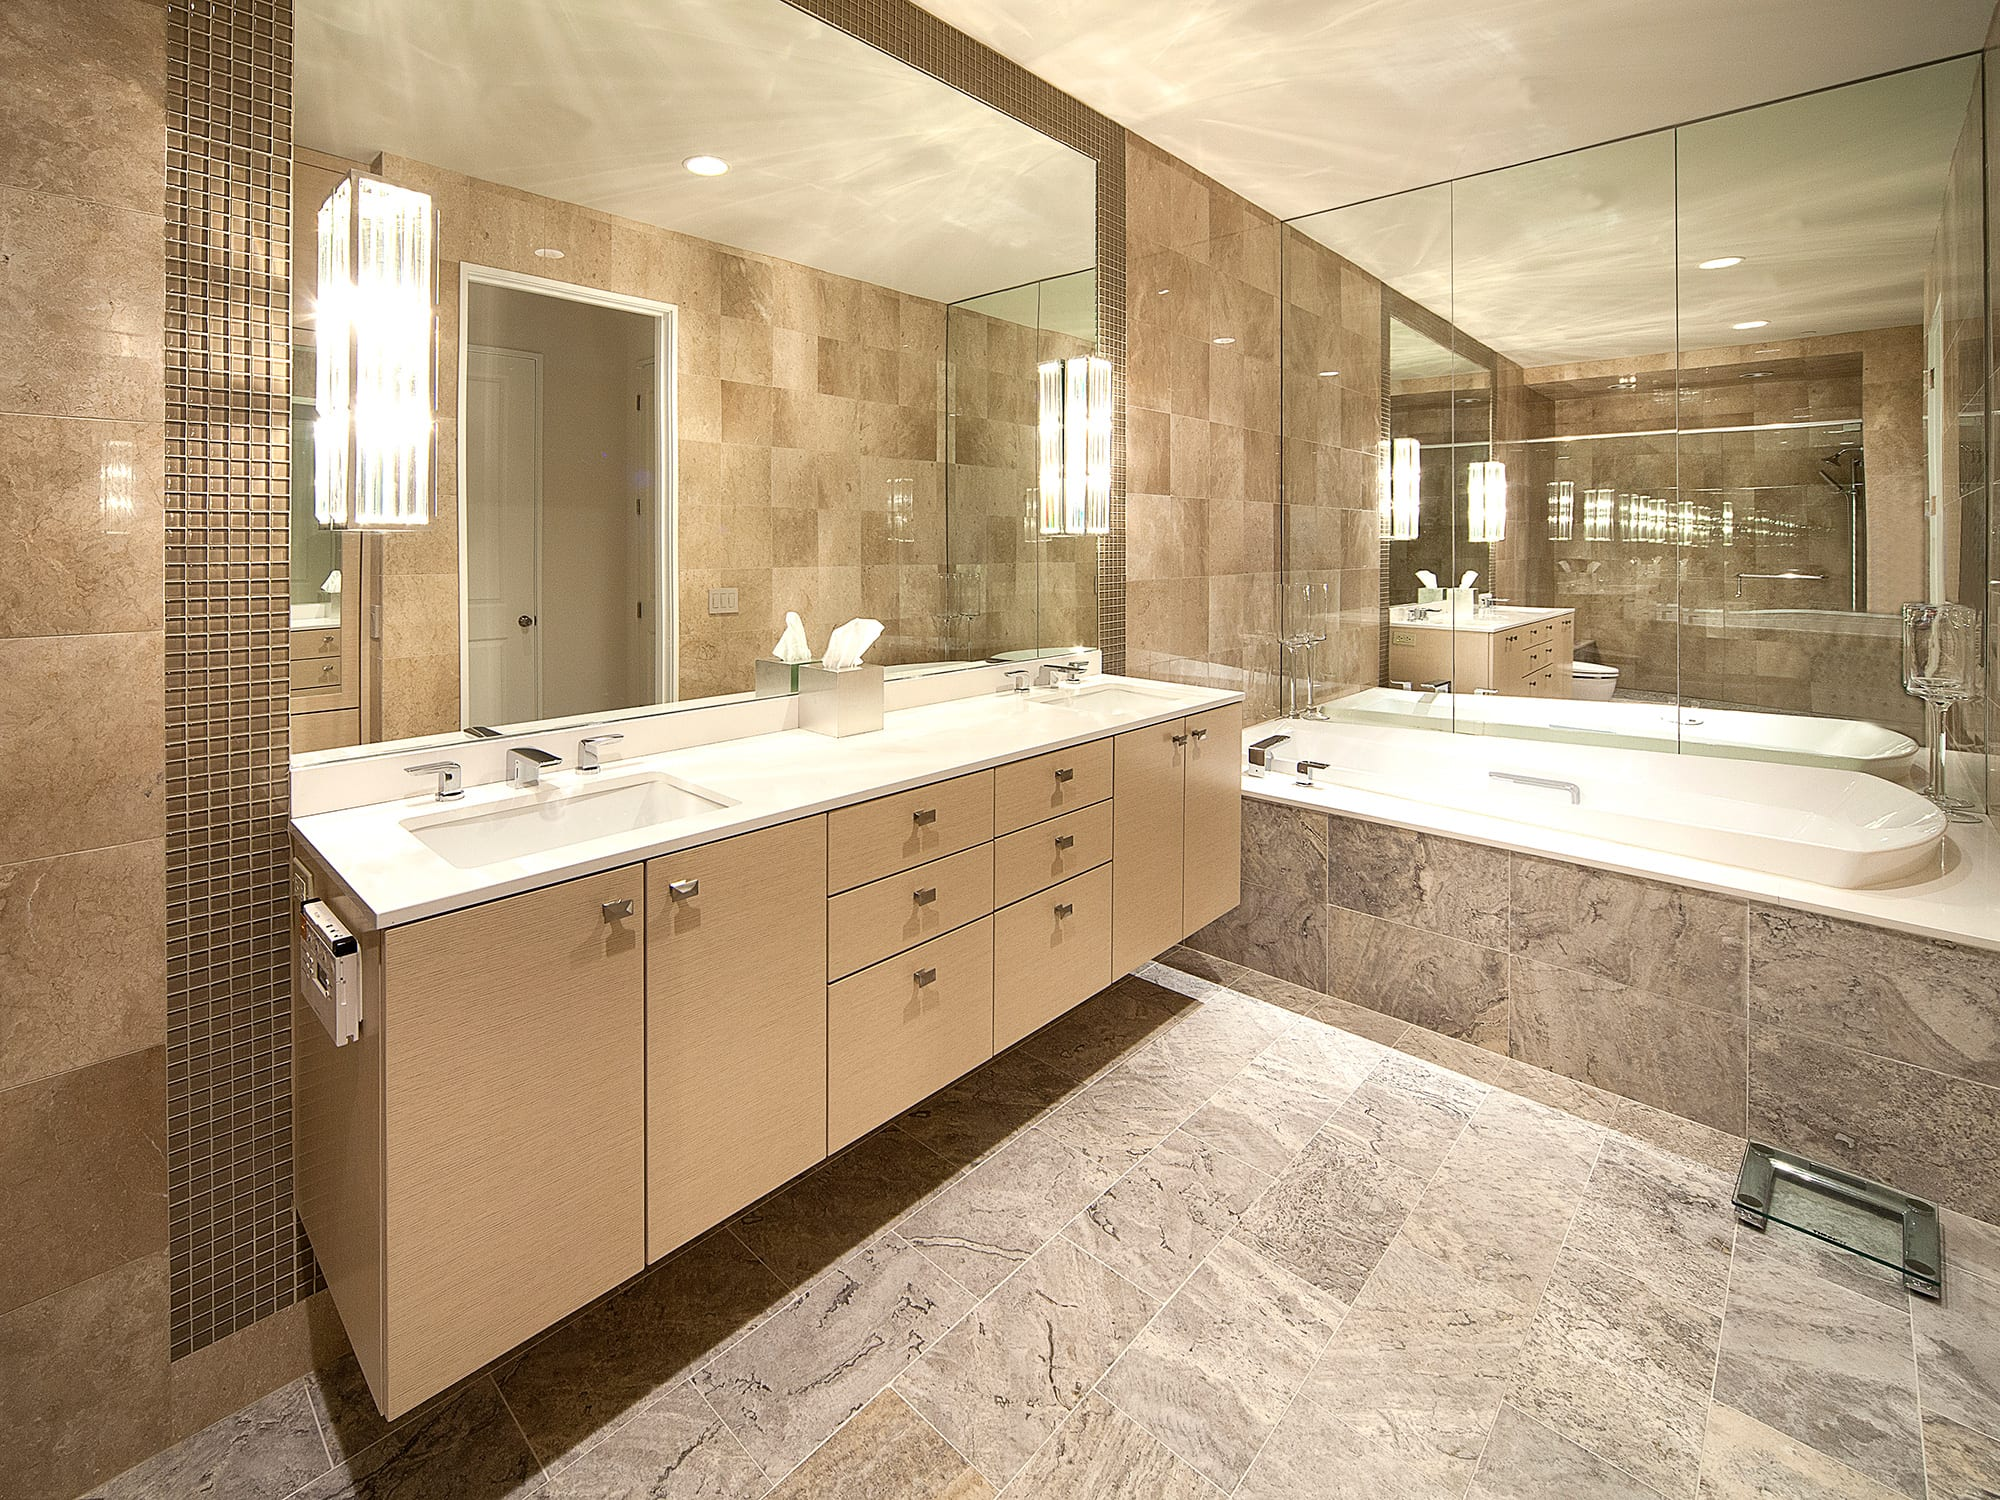 Cabinet Innovations Bathroom Cabinets Gallery Images